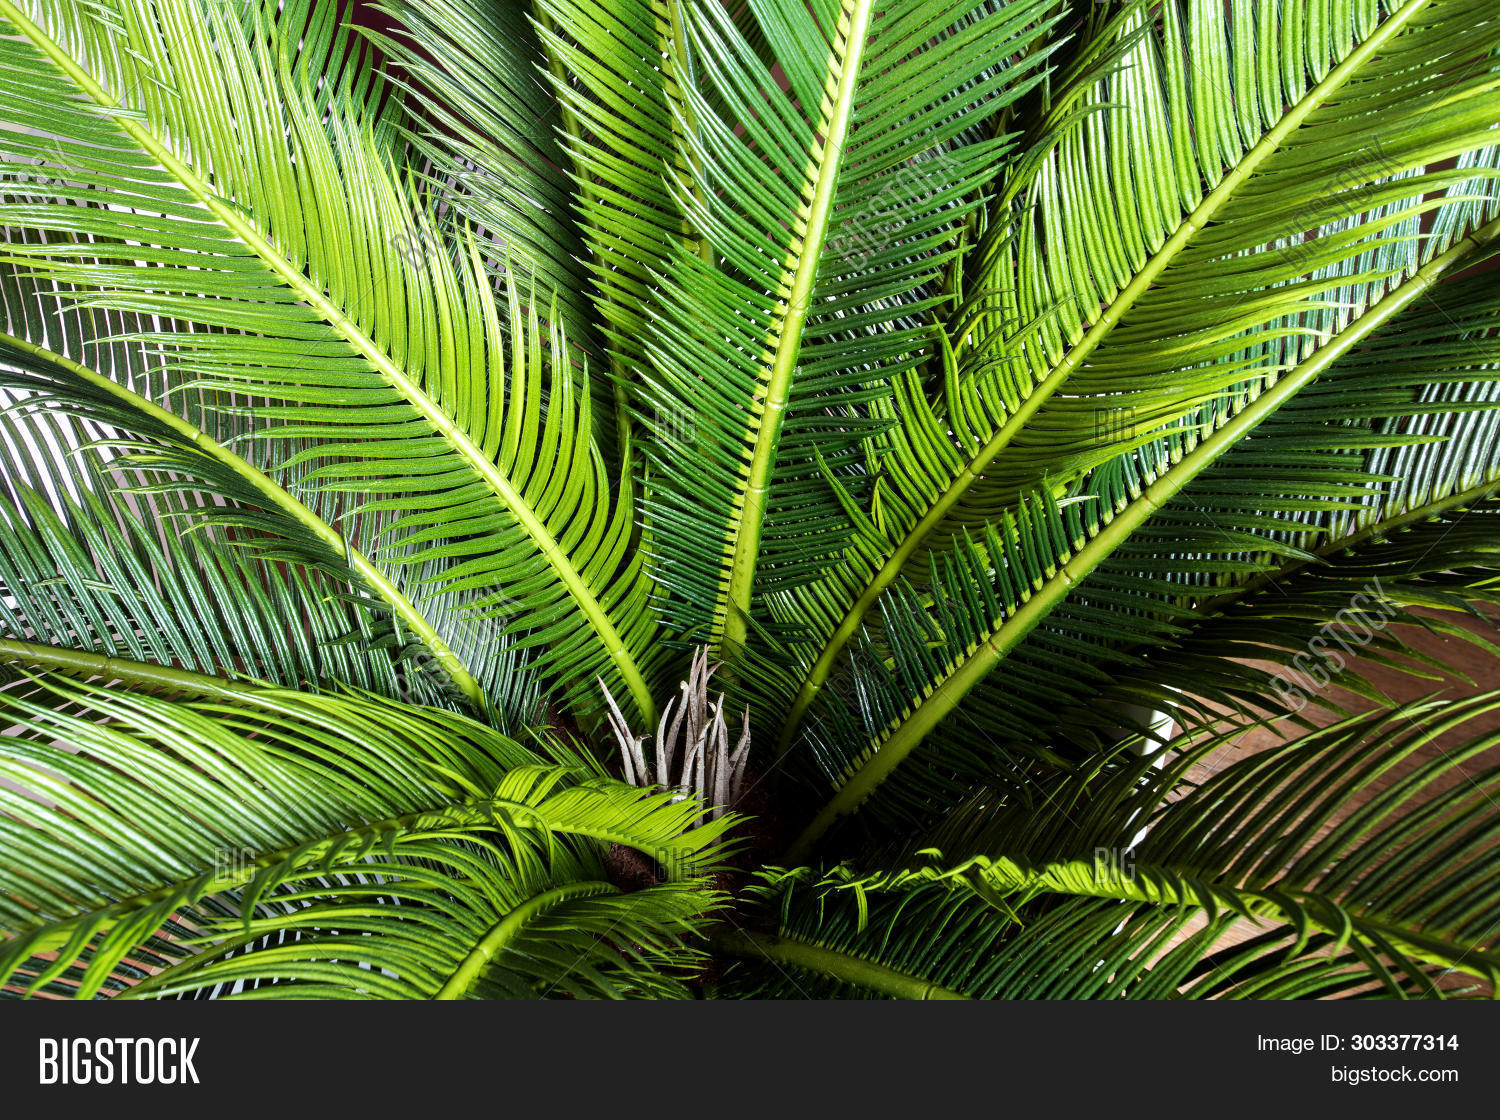 Abstract Green Leaf Image Photo Free Trial Bigstock